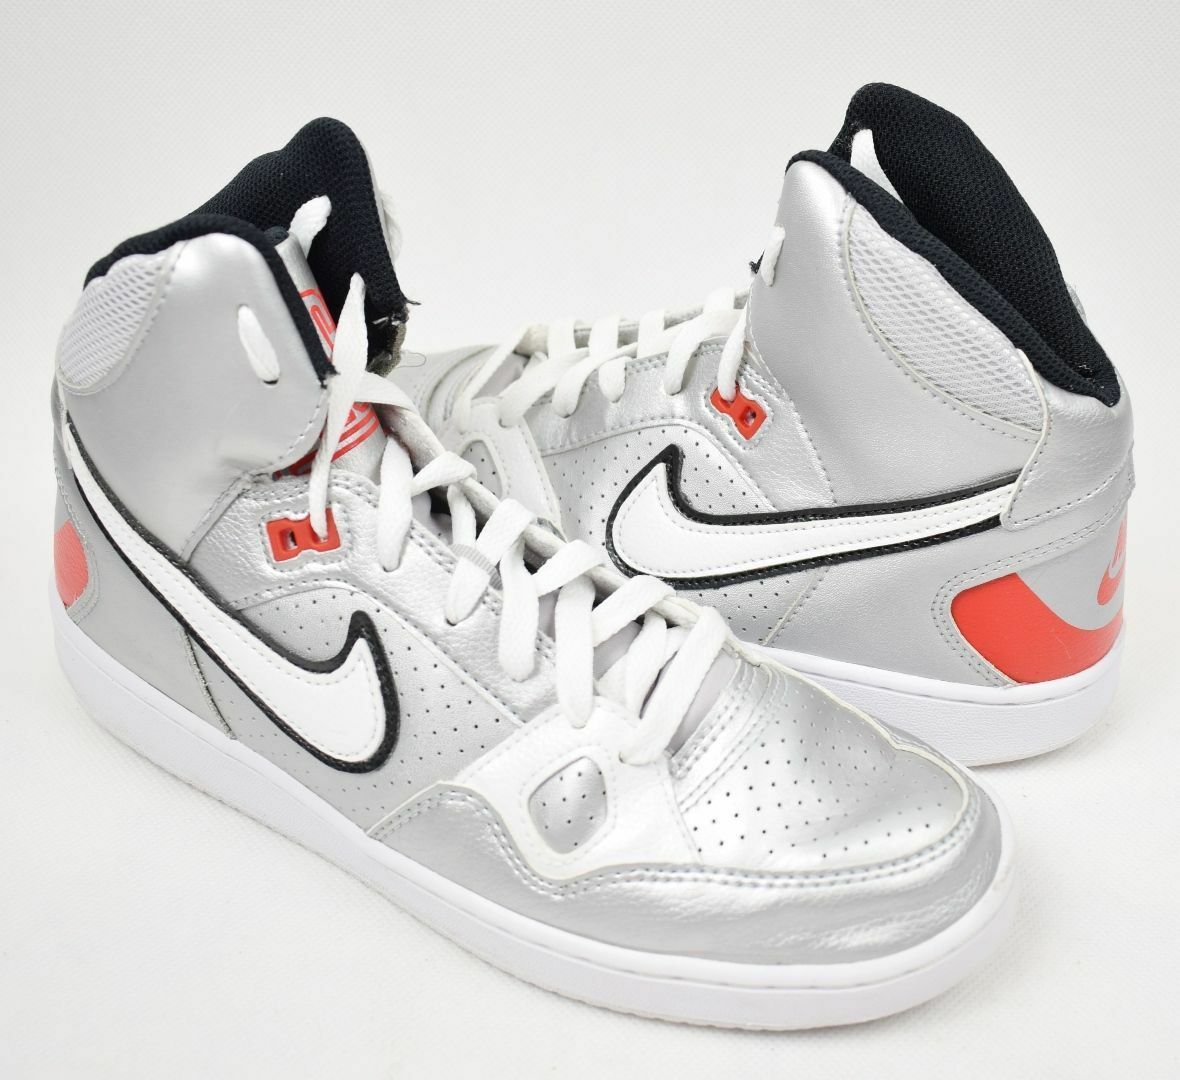 Nike Son of Force Mid Silver Trainers Girls Womens UK Size 5.5 EU 39